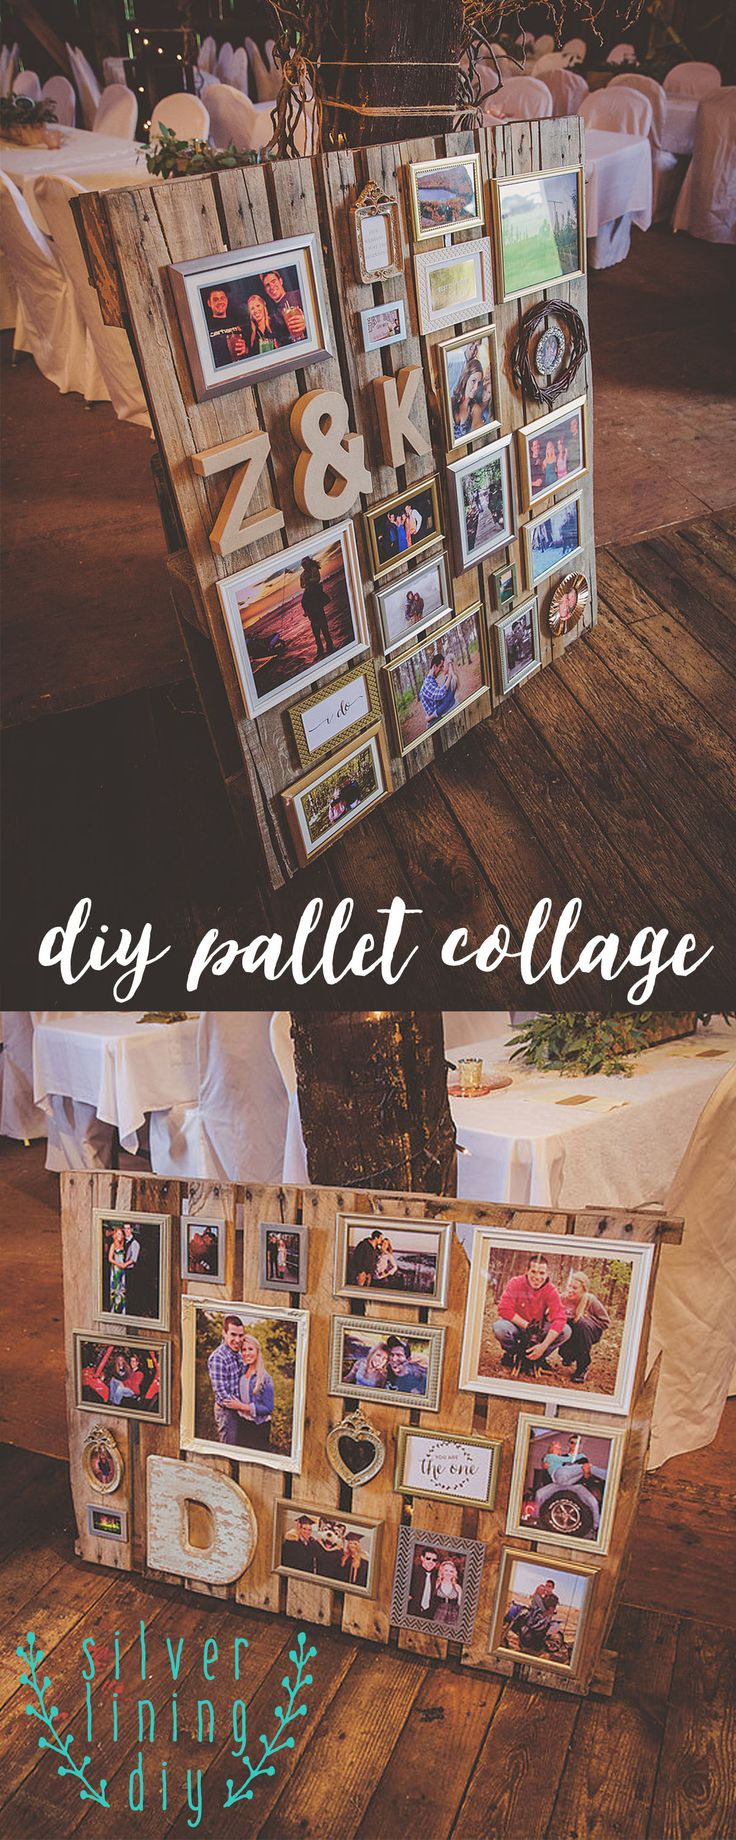 diypalletcollage-copy.jpg (1200×3000)